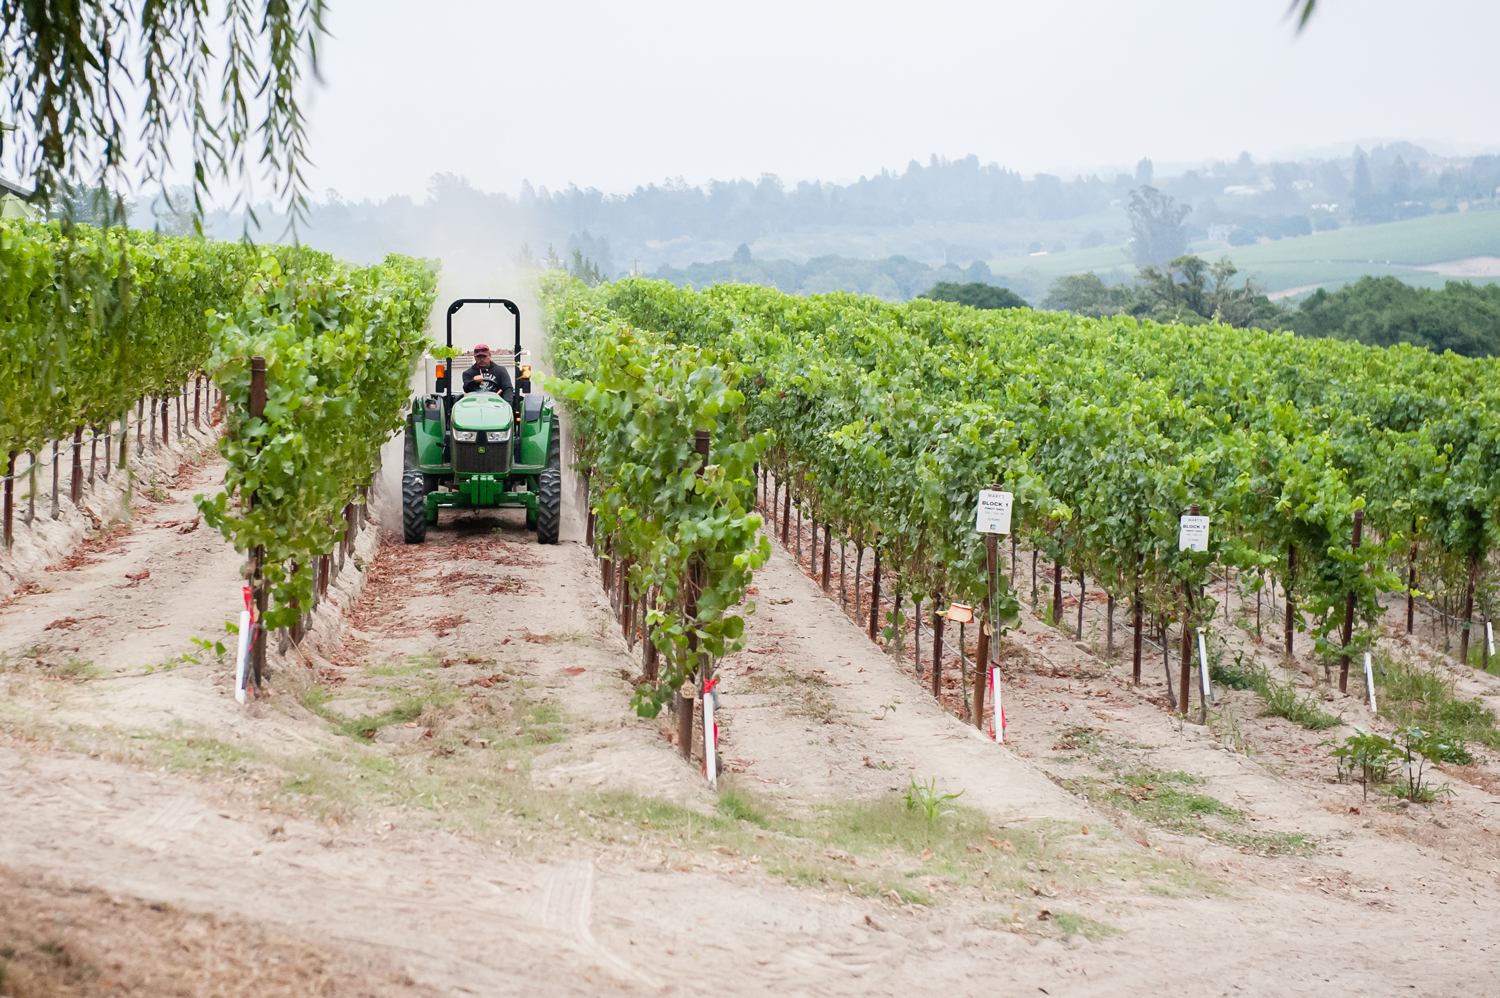 Tractor_plowing_through_Mary's_vineyard_rows.png